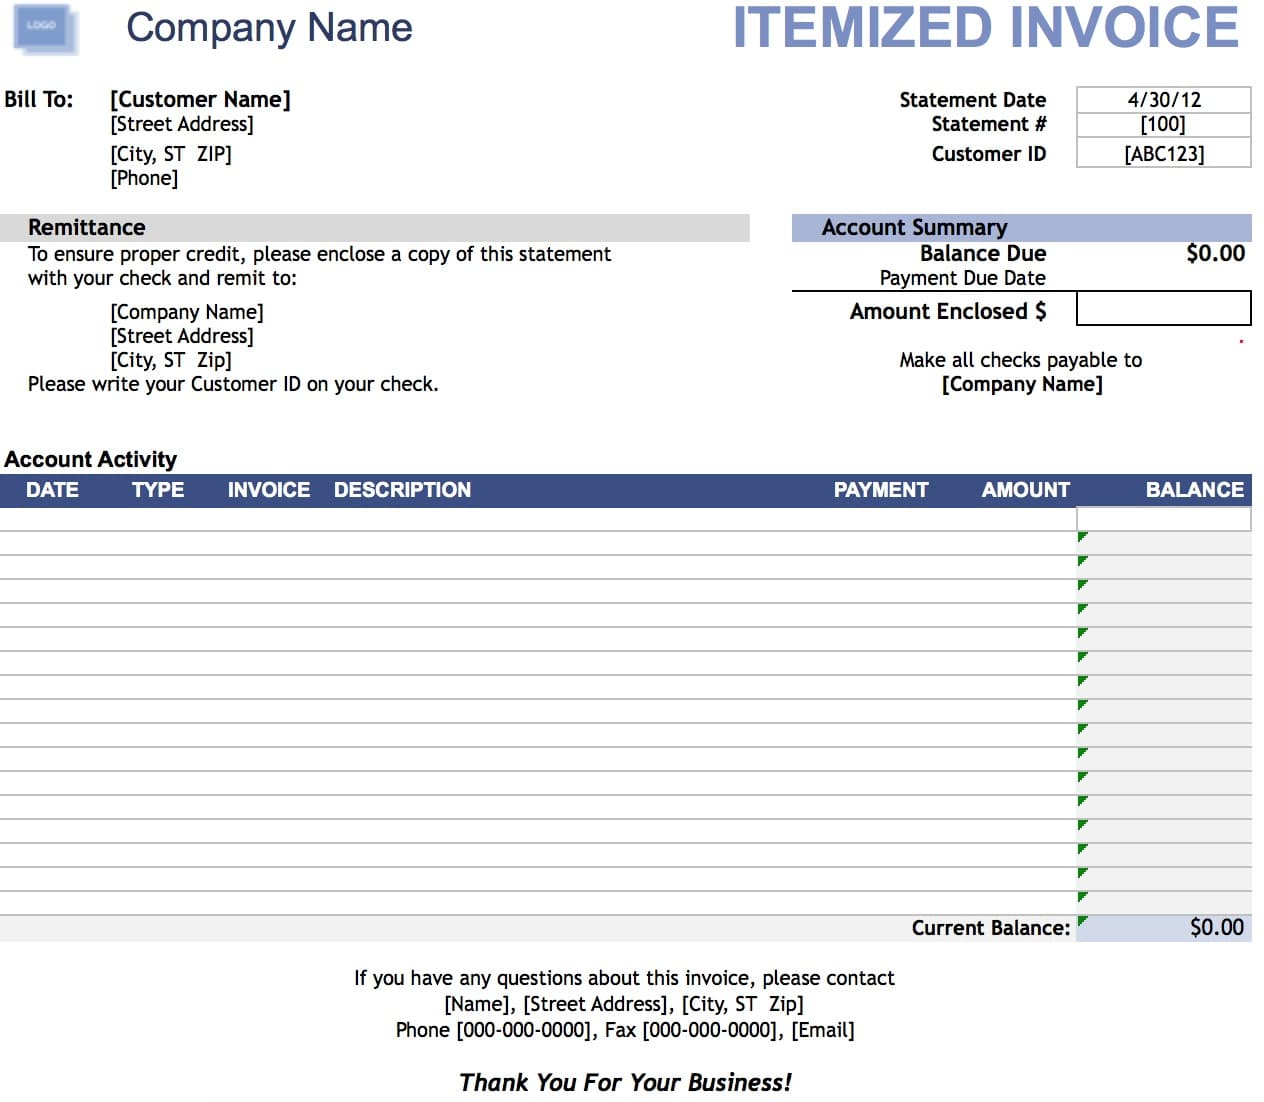 blank invoice templates in pdf word excel itemized